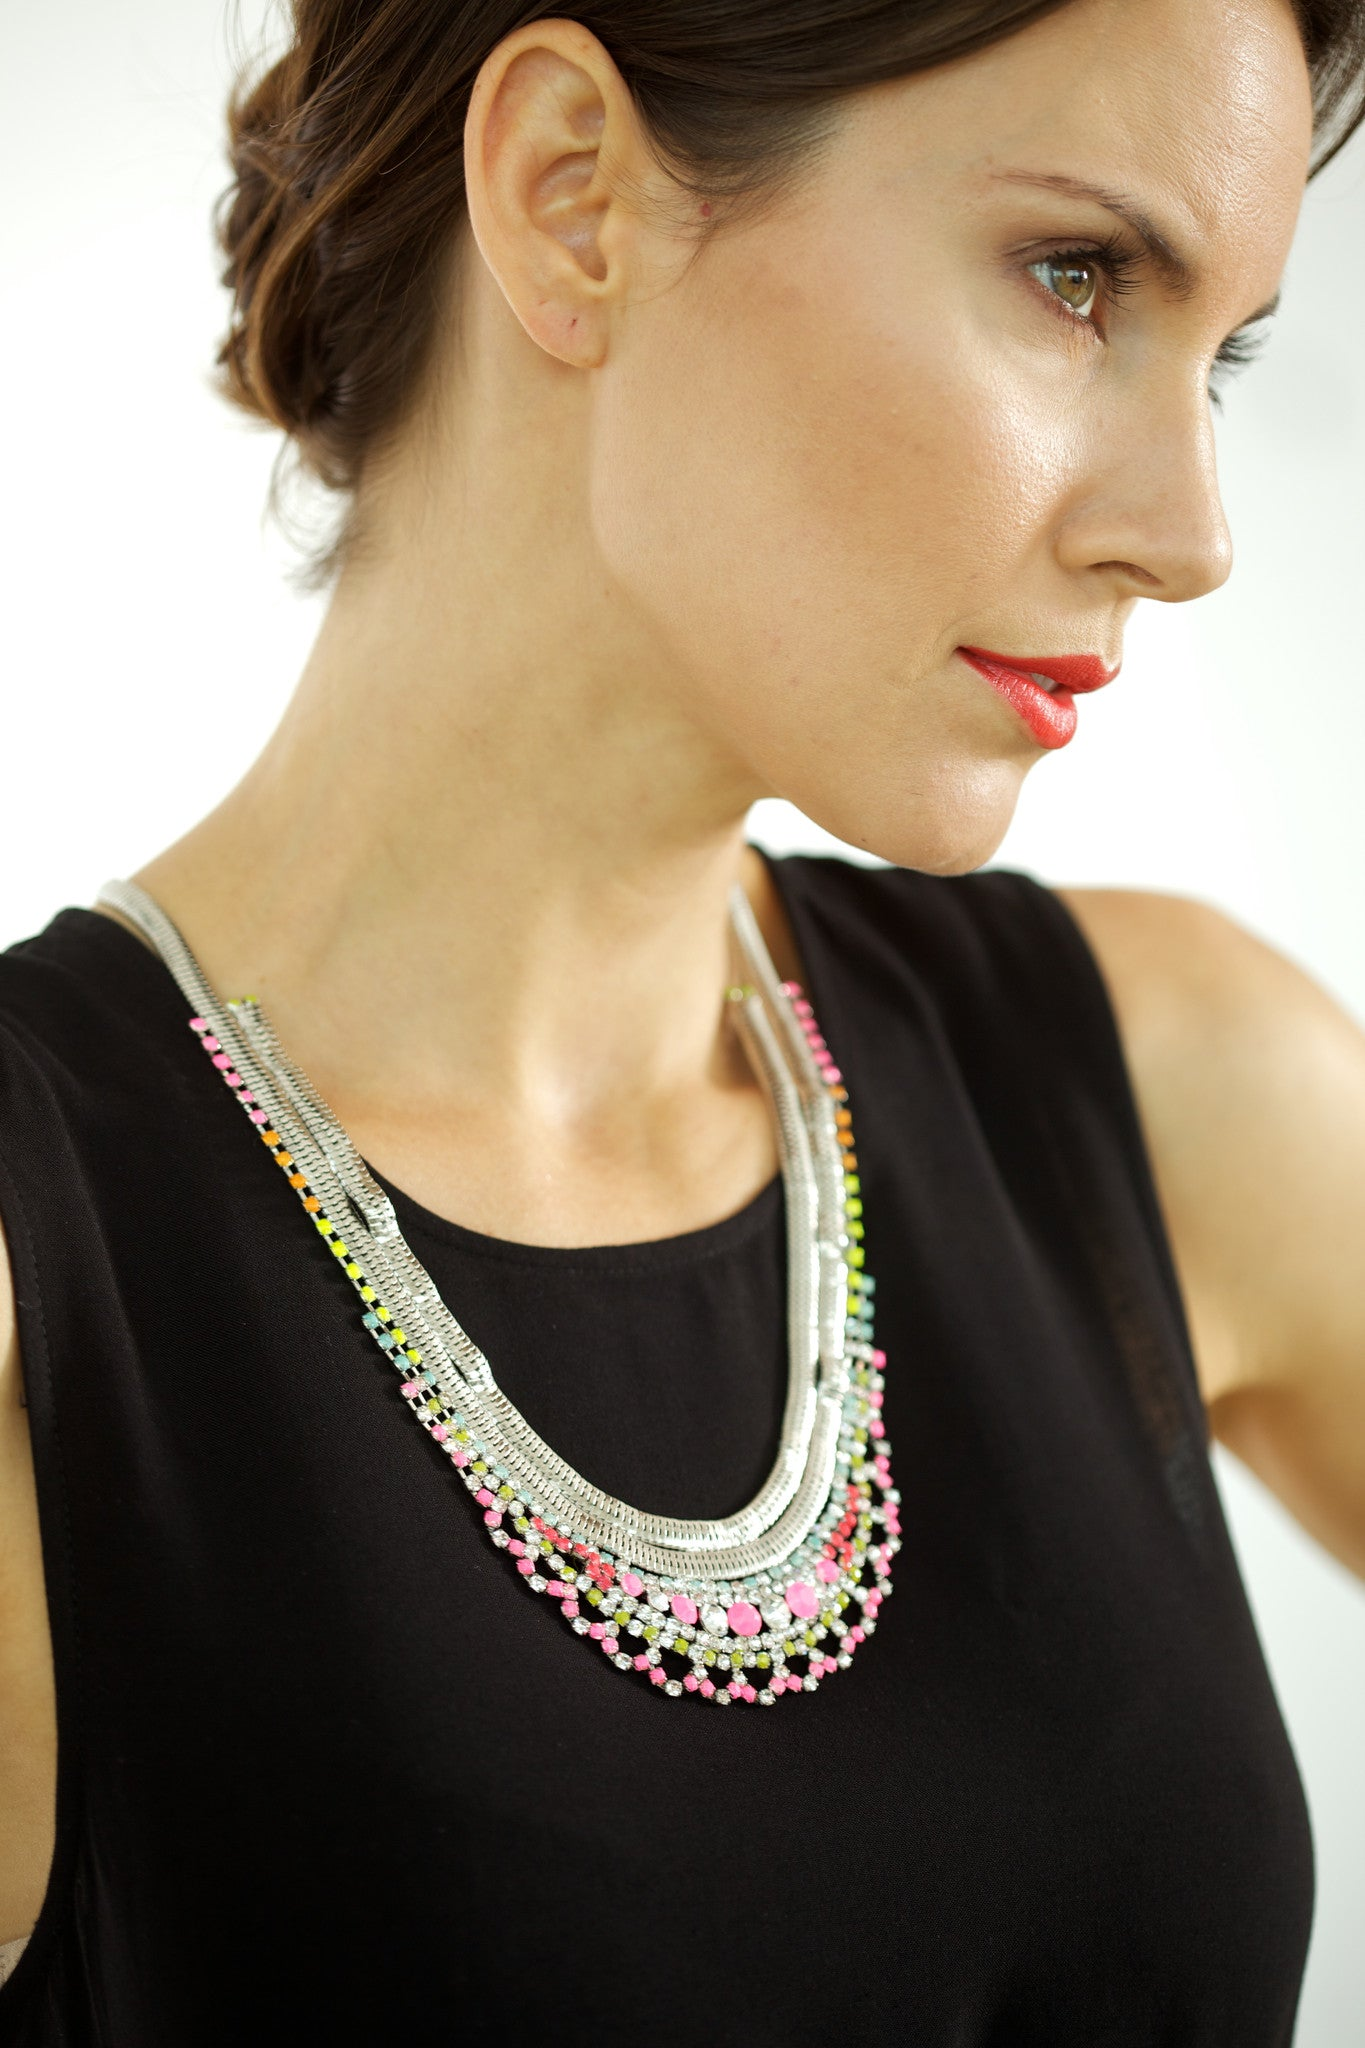 Shah Crystal Necklace